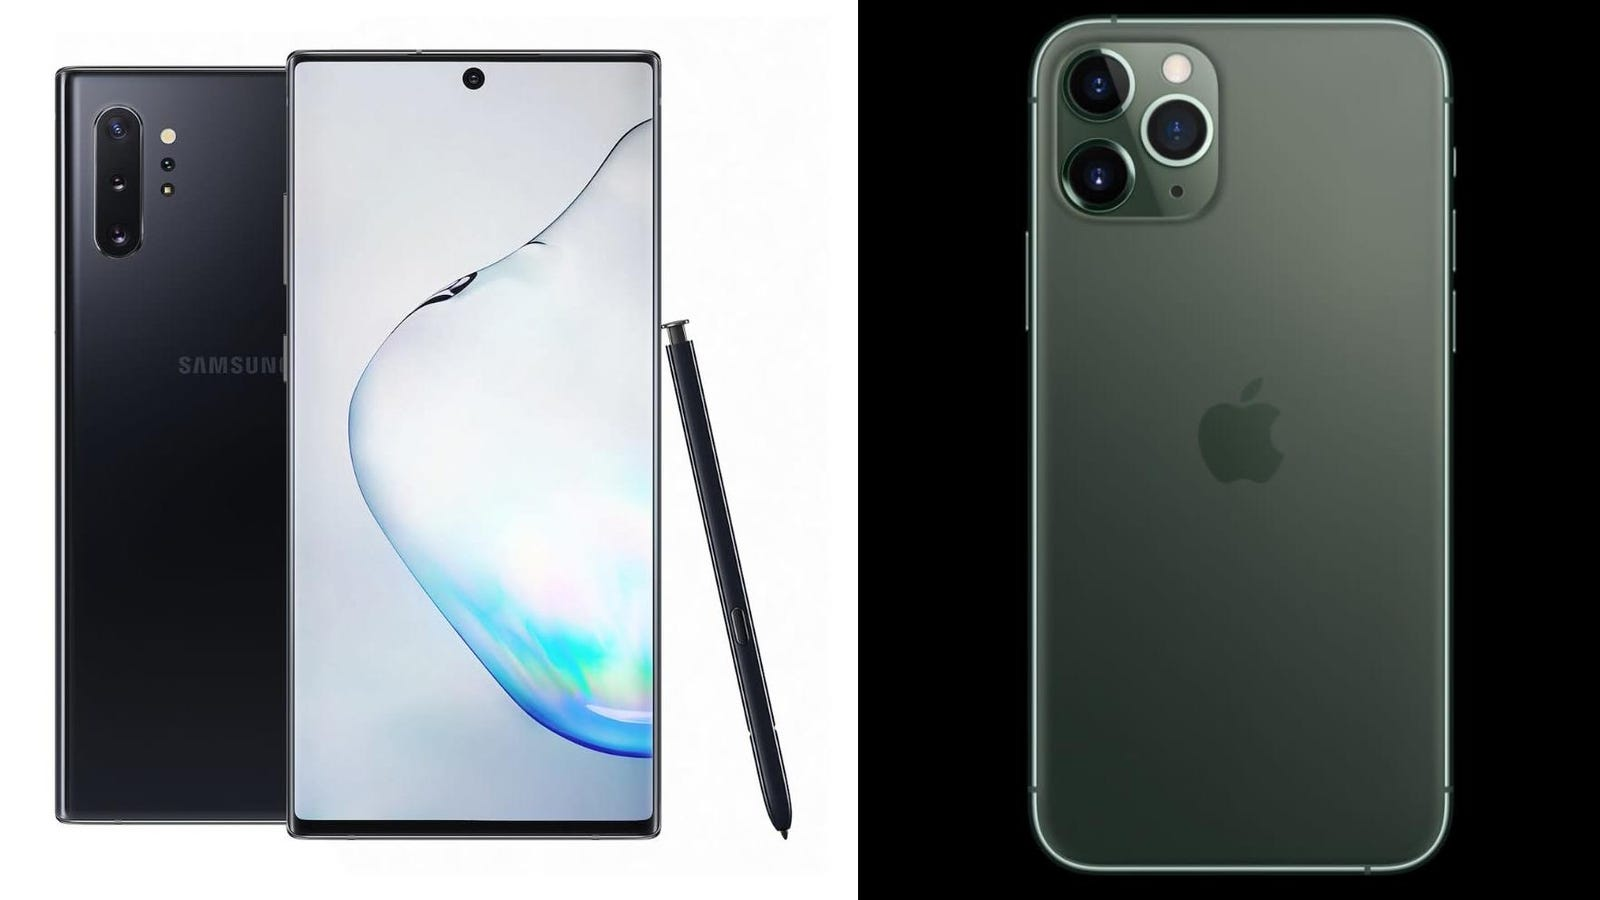 Should You Buy Apple's iPhone 11 Pro or Samsung's Galaxy Note 10?